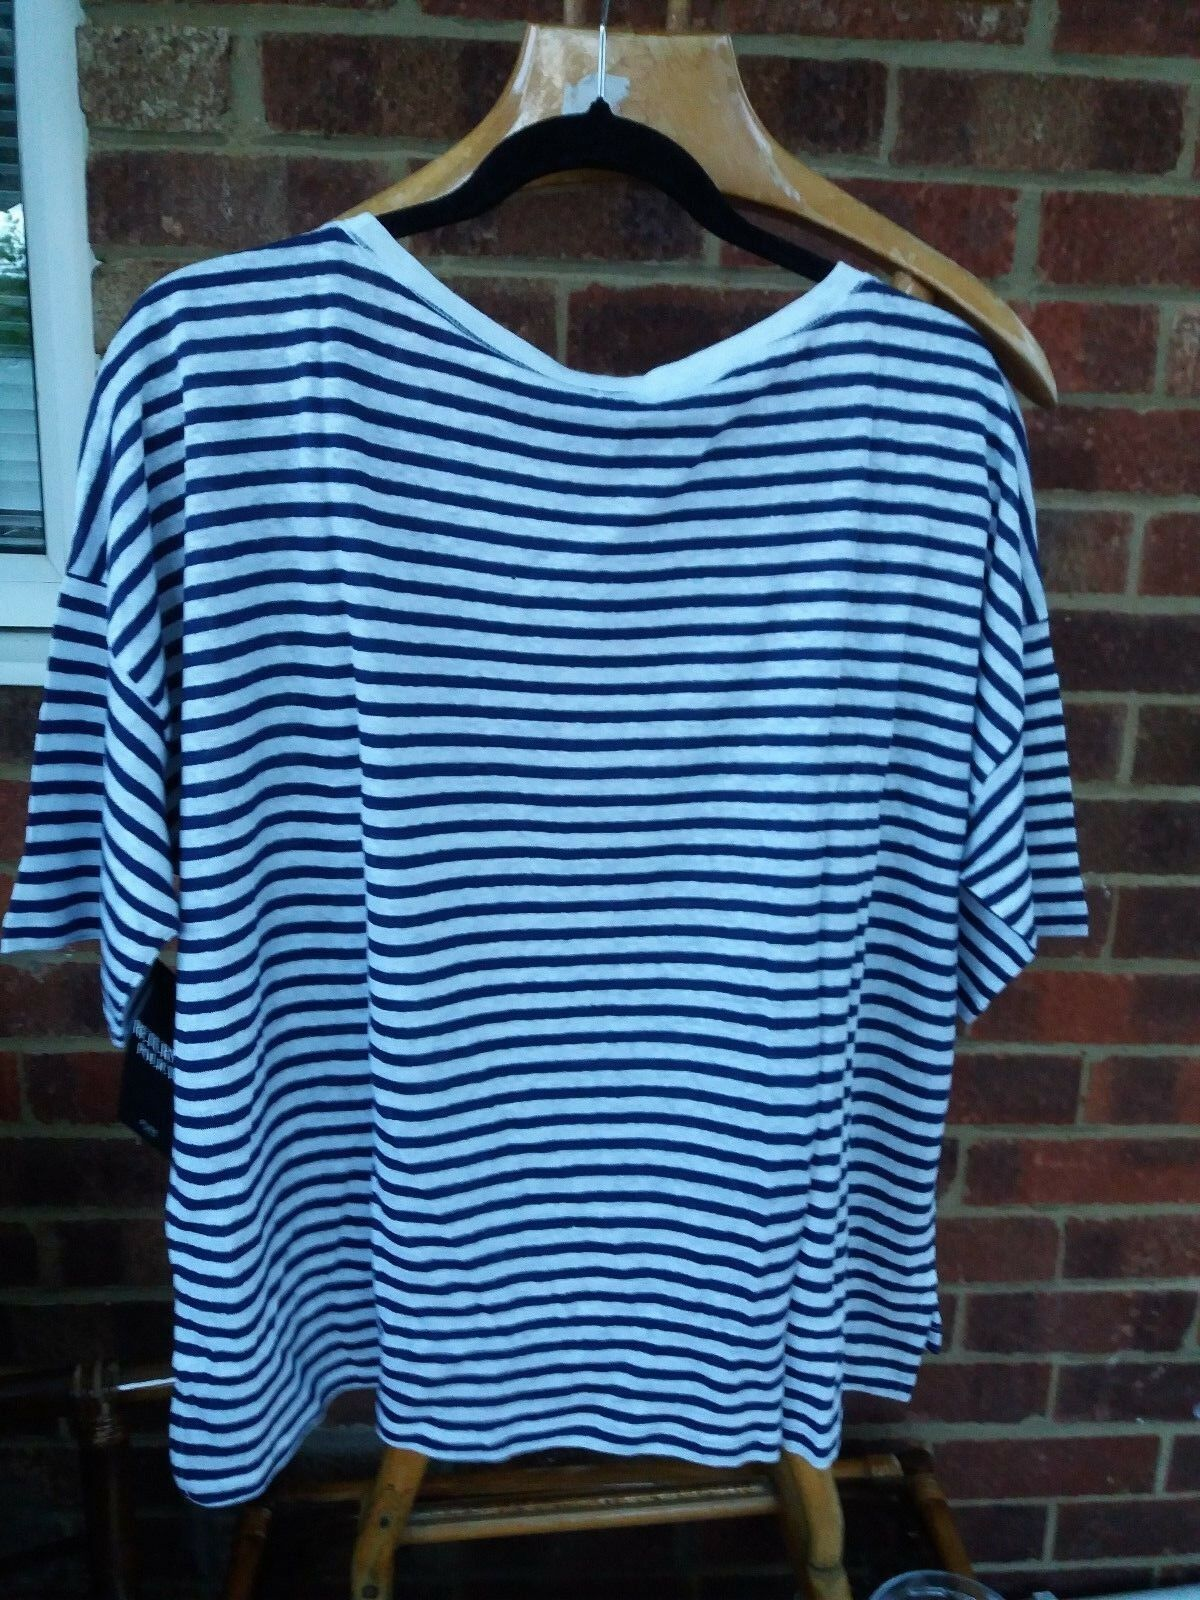 Pure Collection Lusso Biancheria rilassato T-Shirt Blu Navy Navy Navy a Righe-TG RRP a8343e